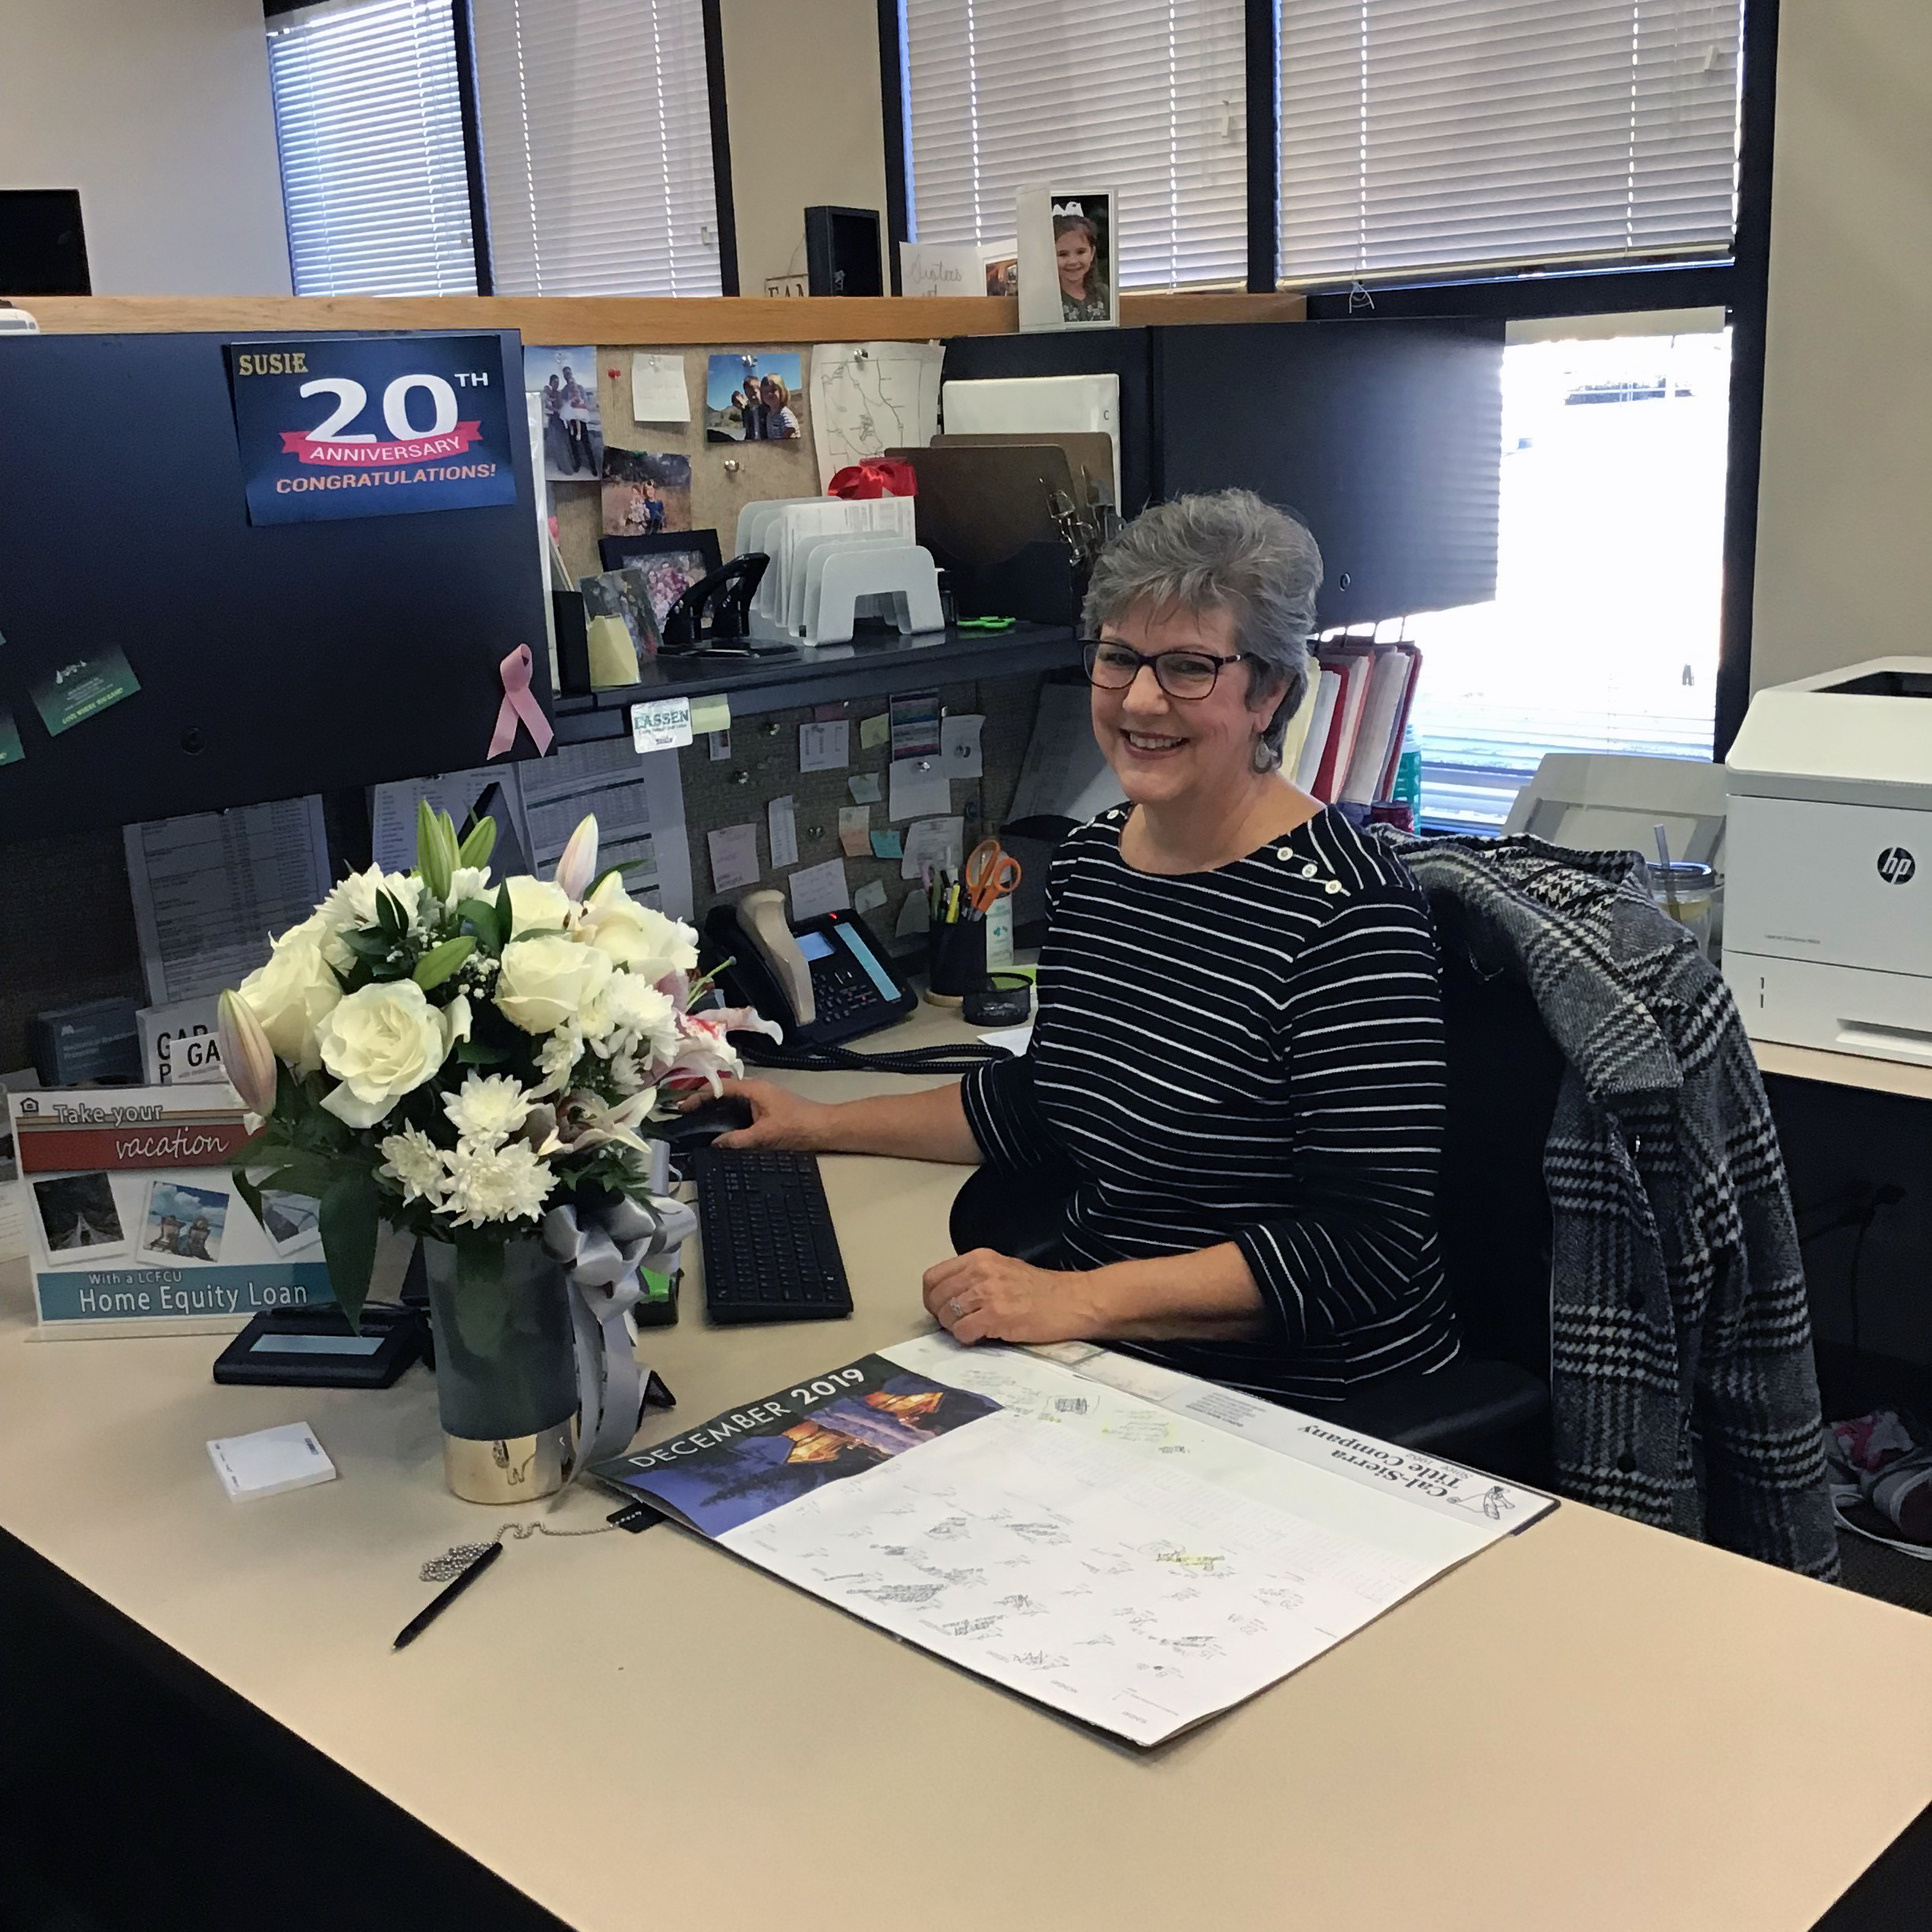 Susie is celebrating her 20th Anniversary as a LCFCU employee